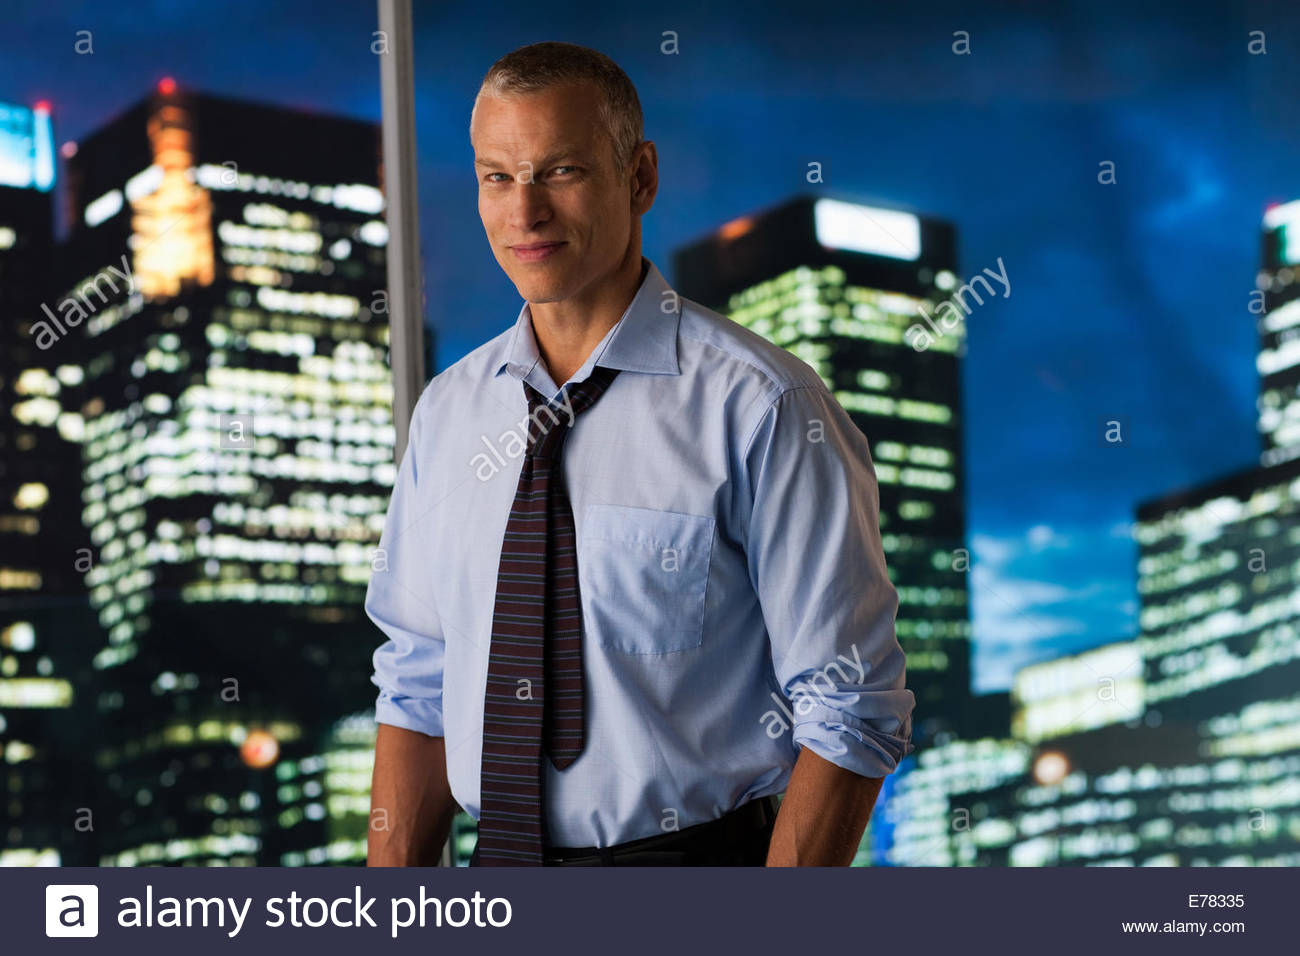 Serious businessman standing at glass wall with cityscape in background - Stock Image